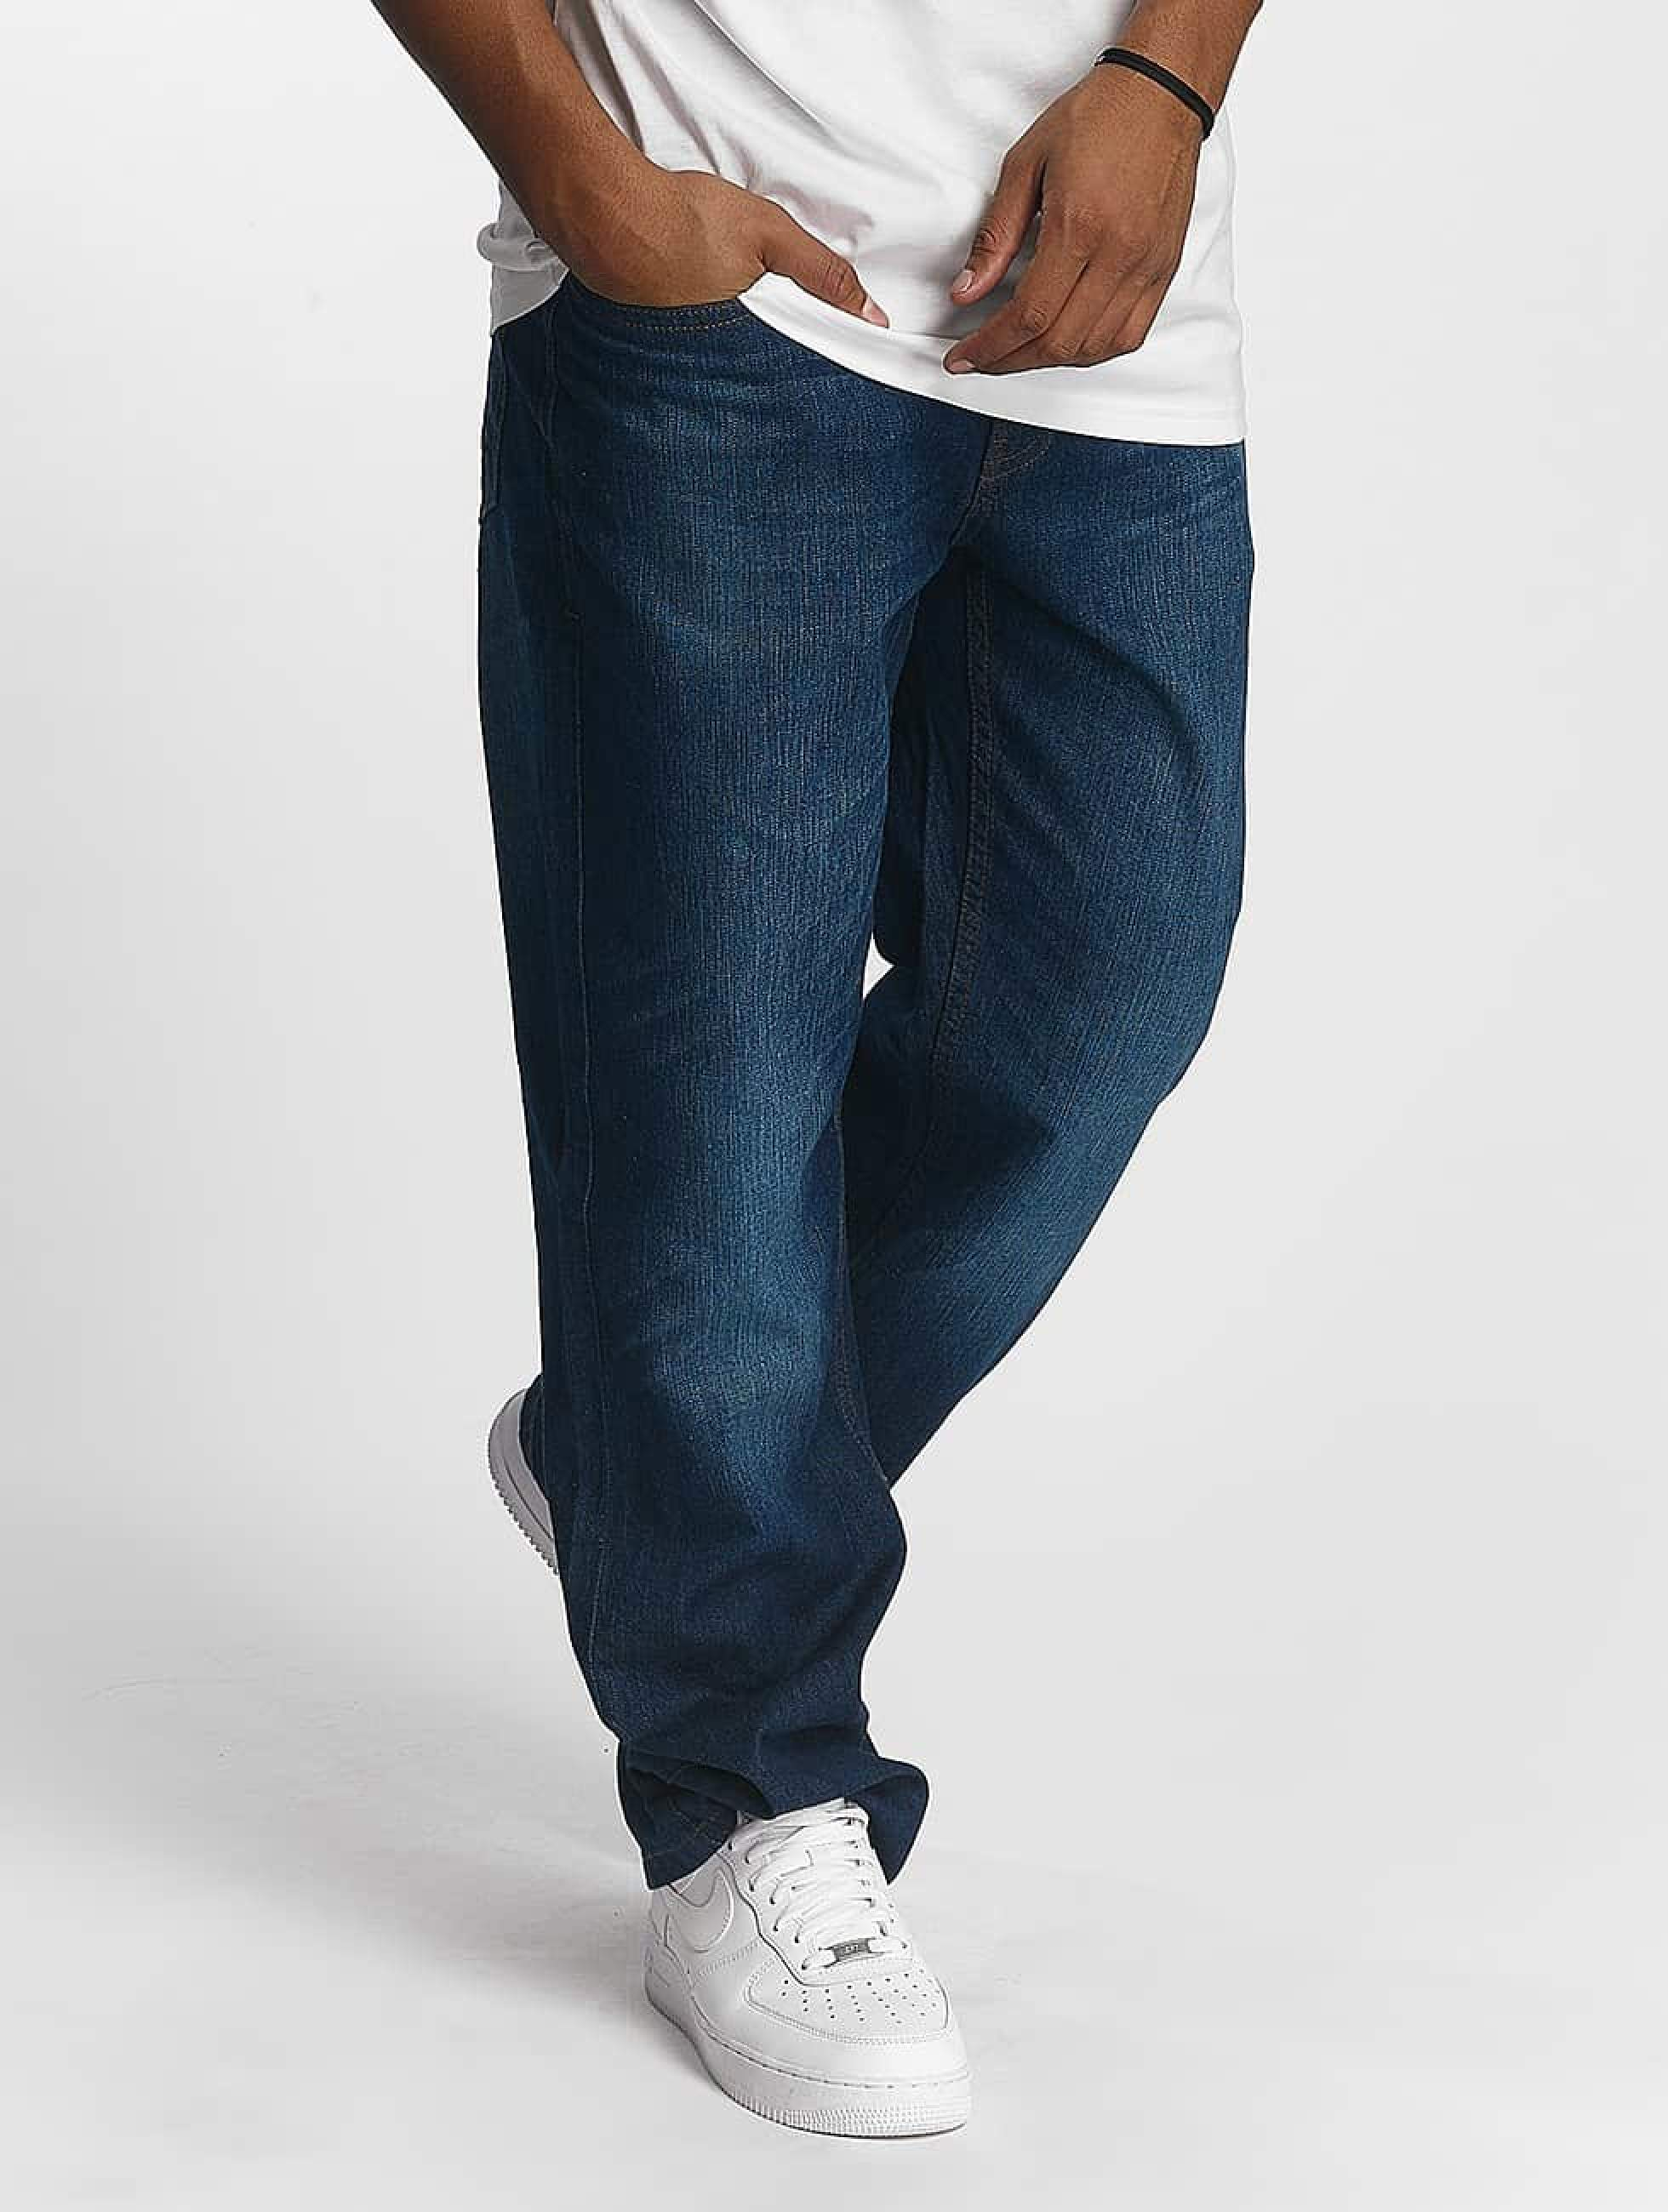 Rocawear / Loose Fit Jeans Loose Fit in blue W 34